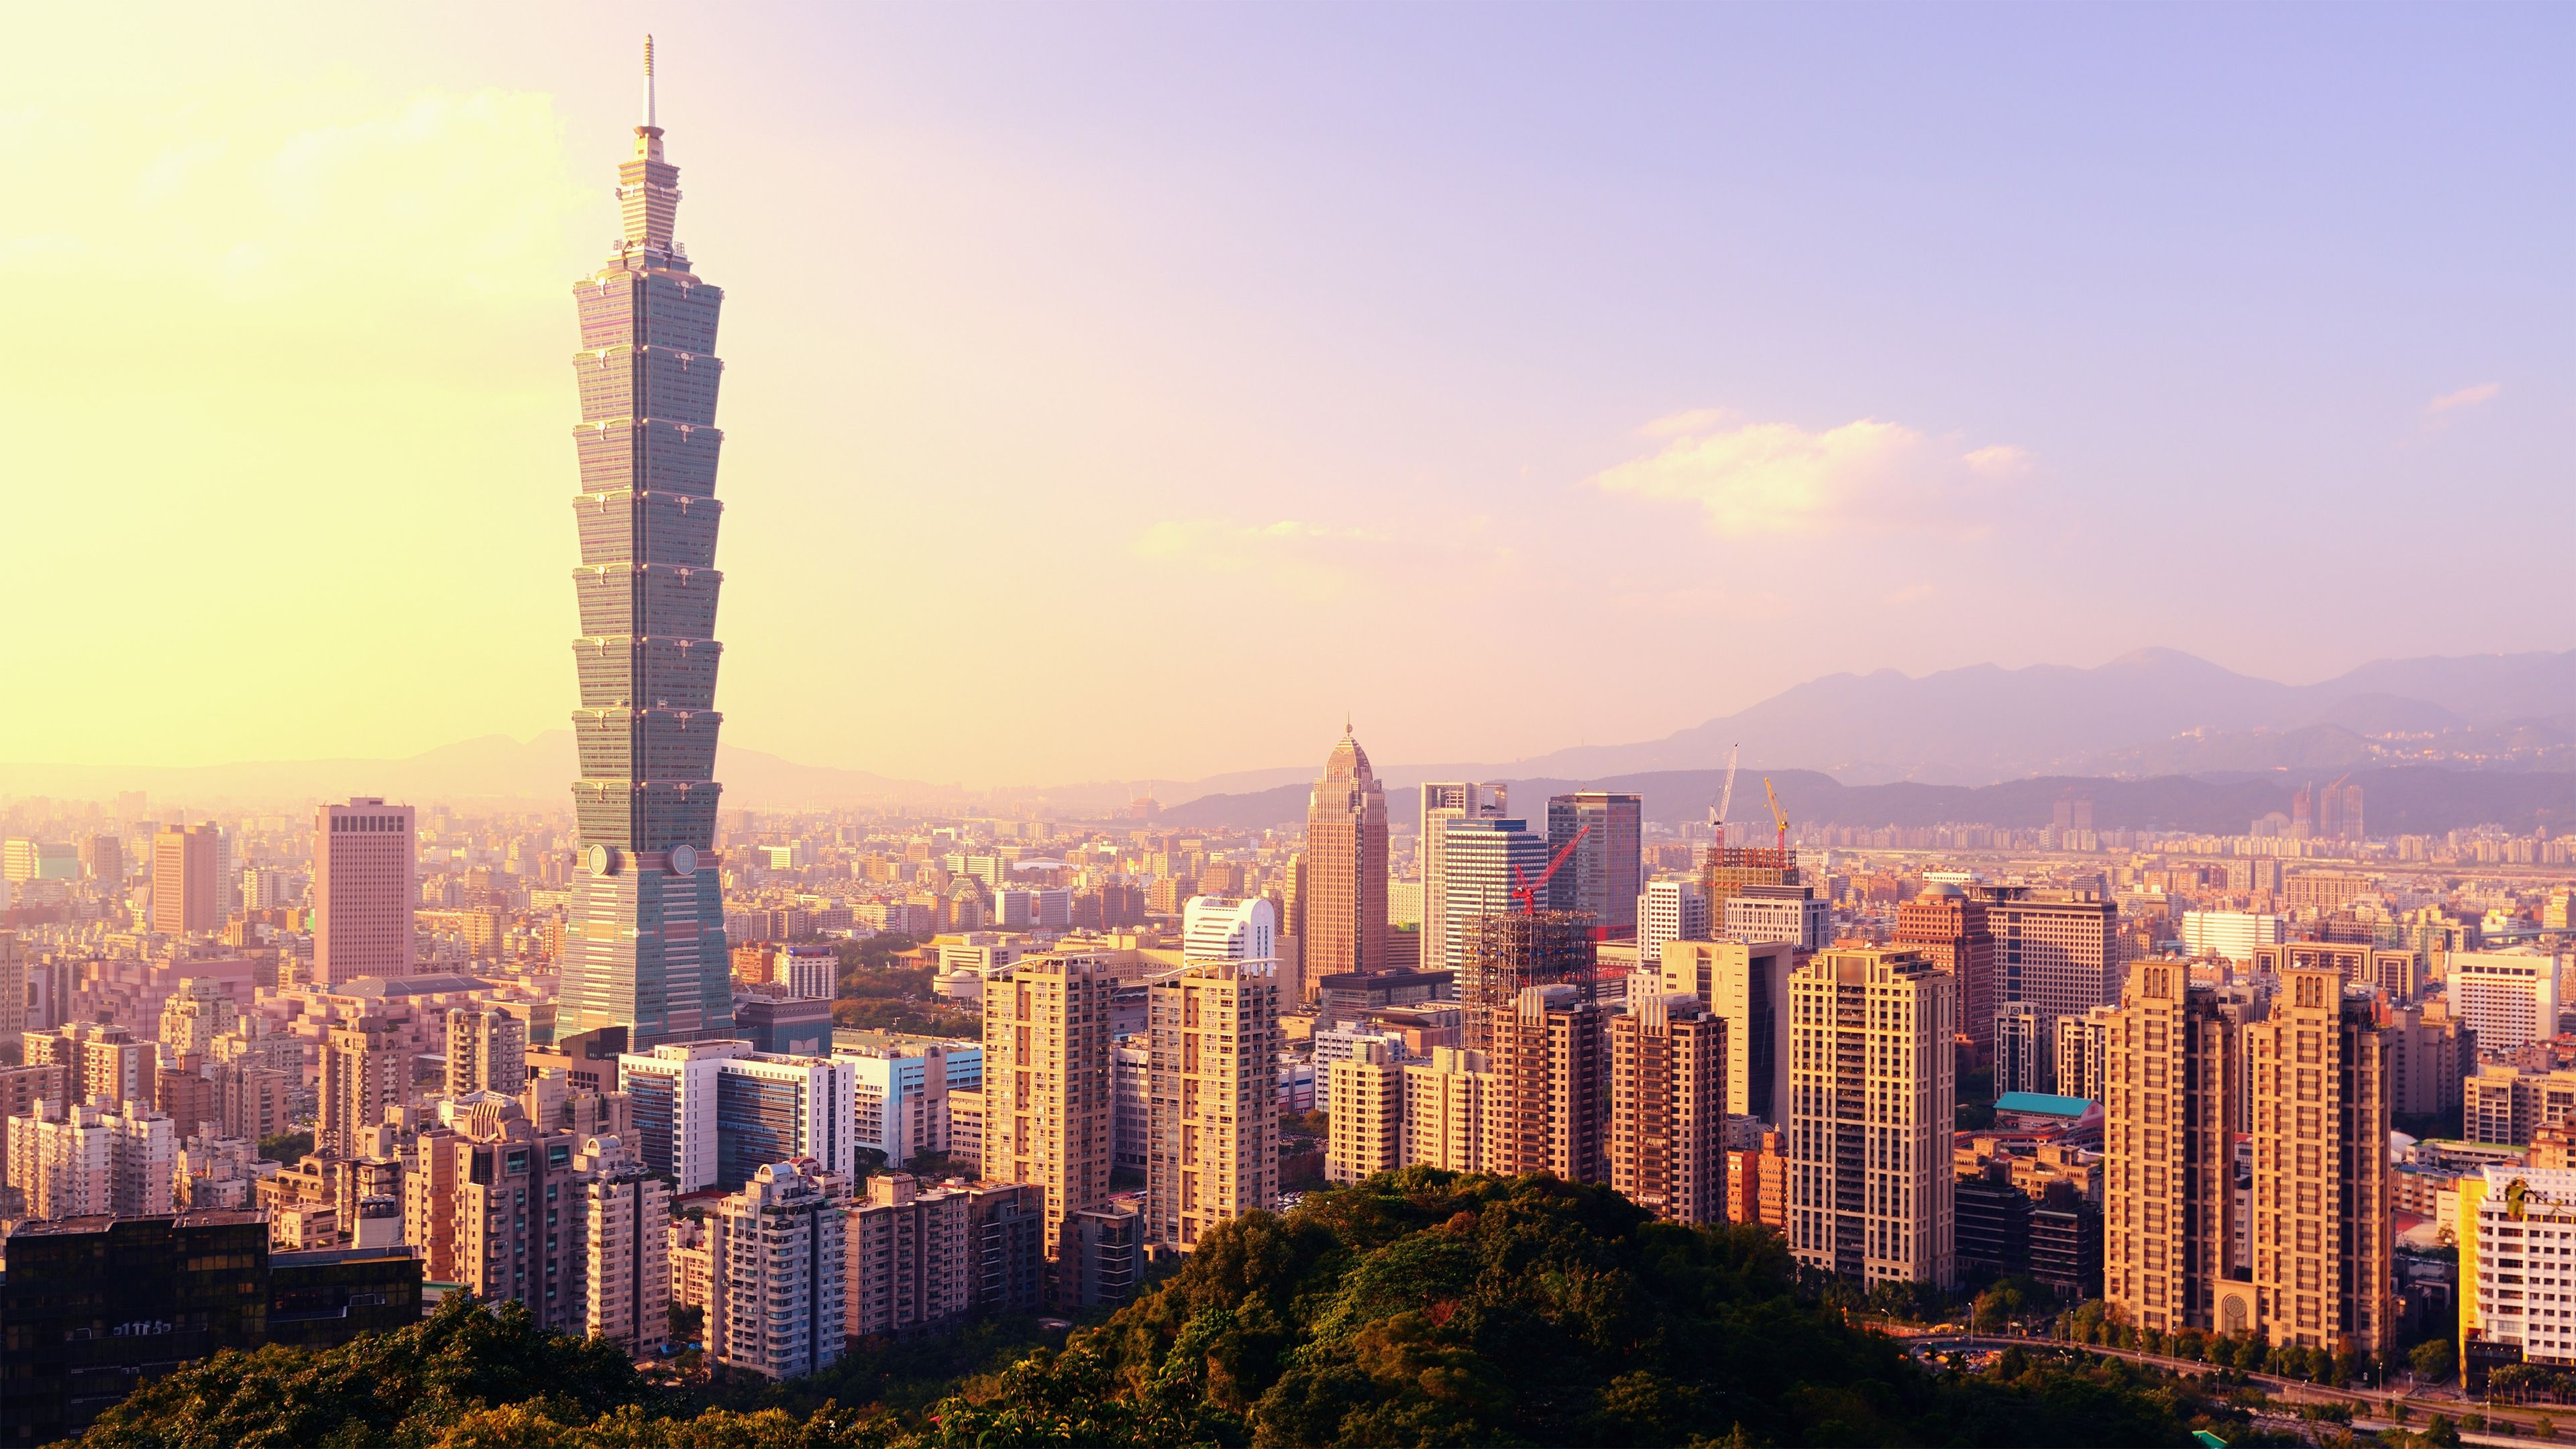 City of Taipei